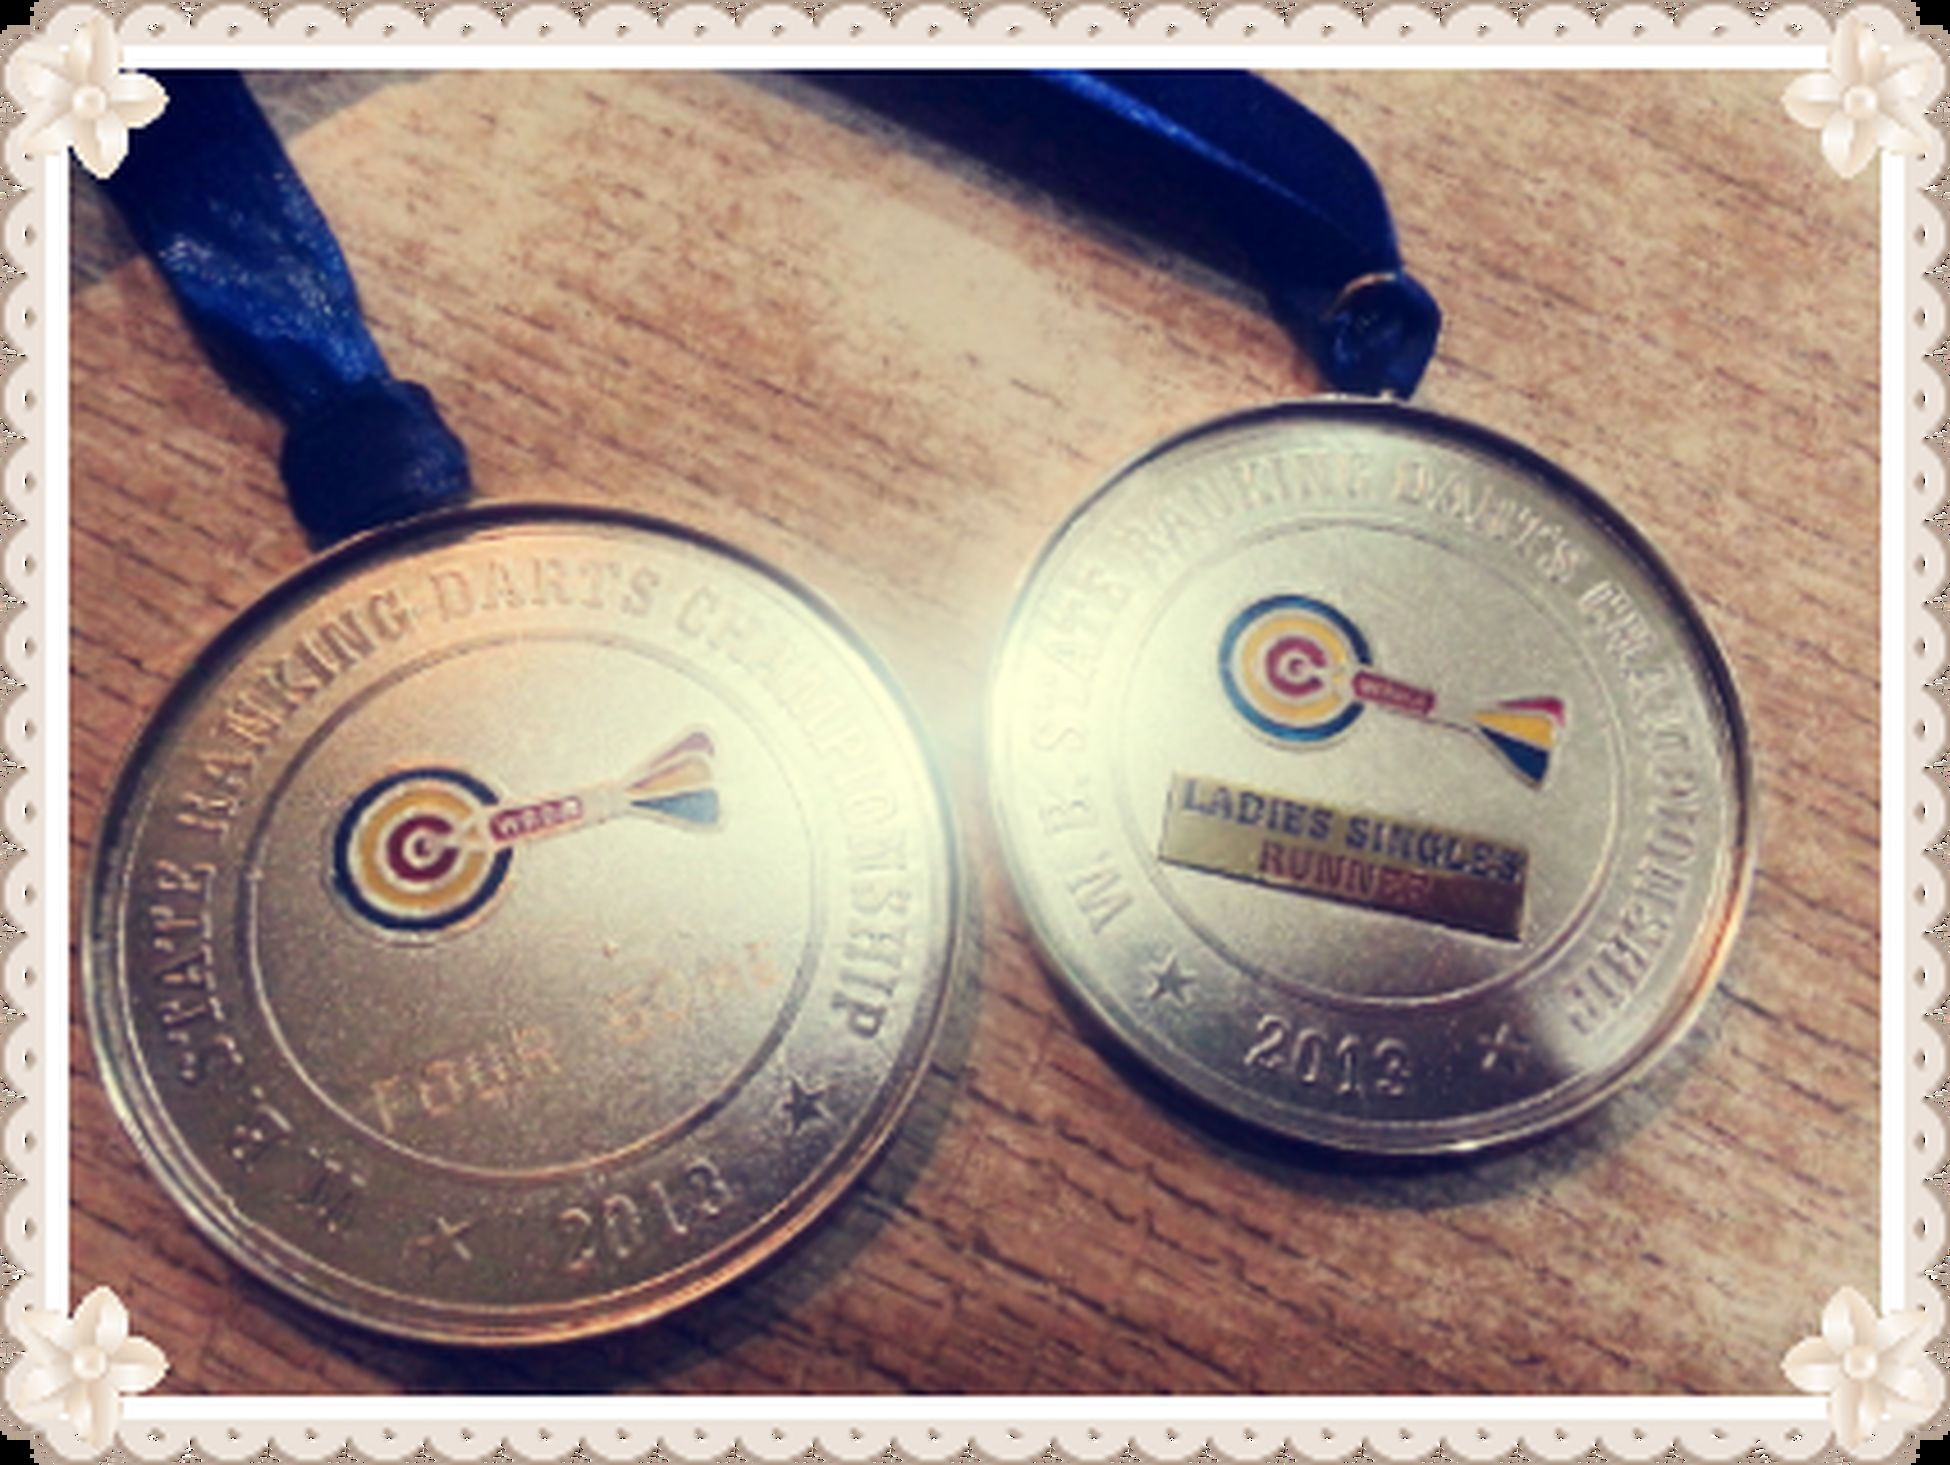 Darts Stateschampionship Medals Happiness ♡